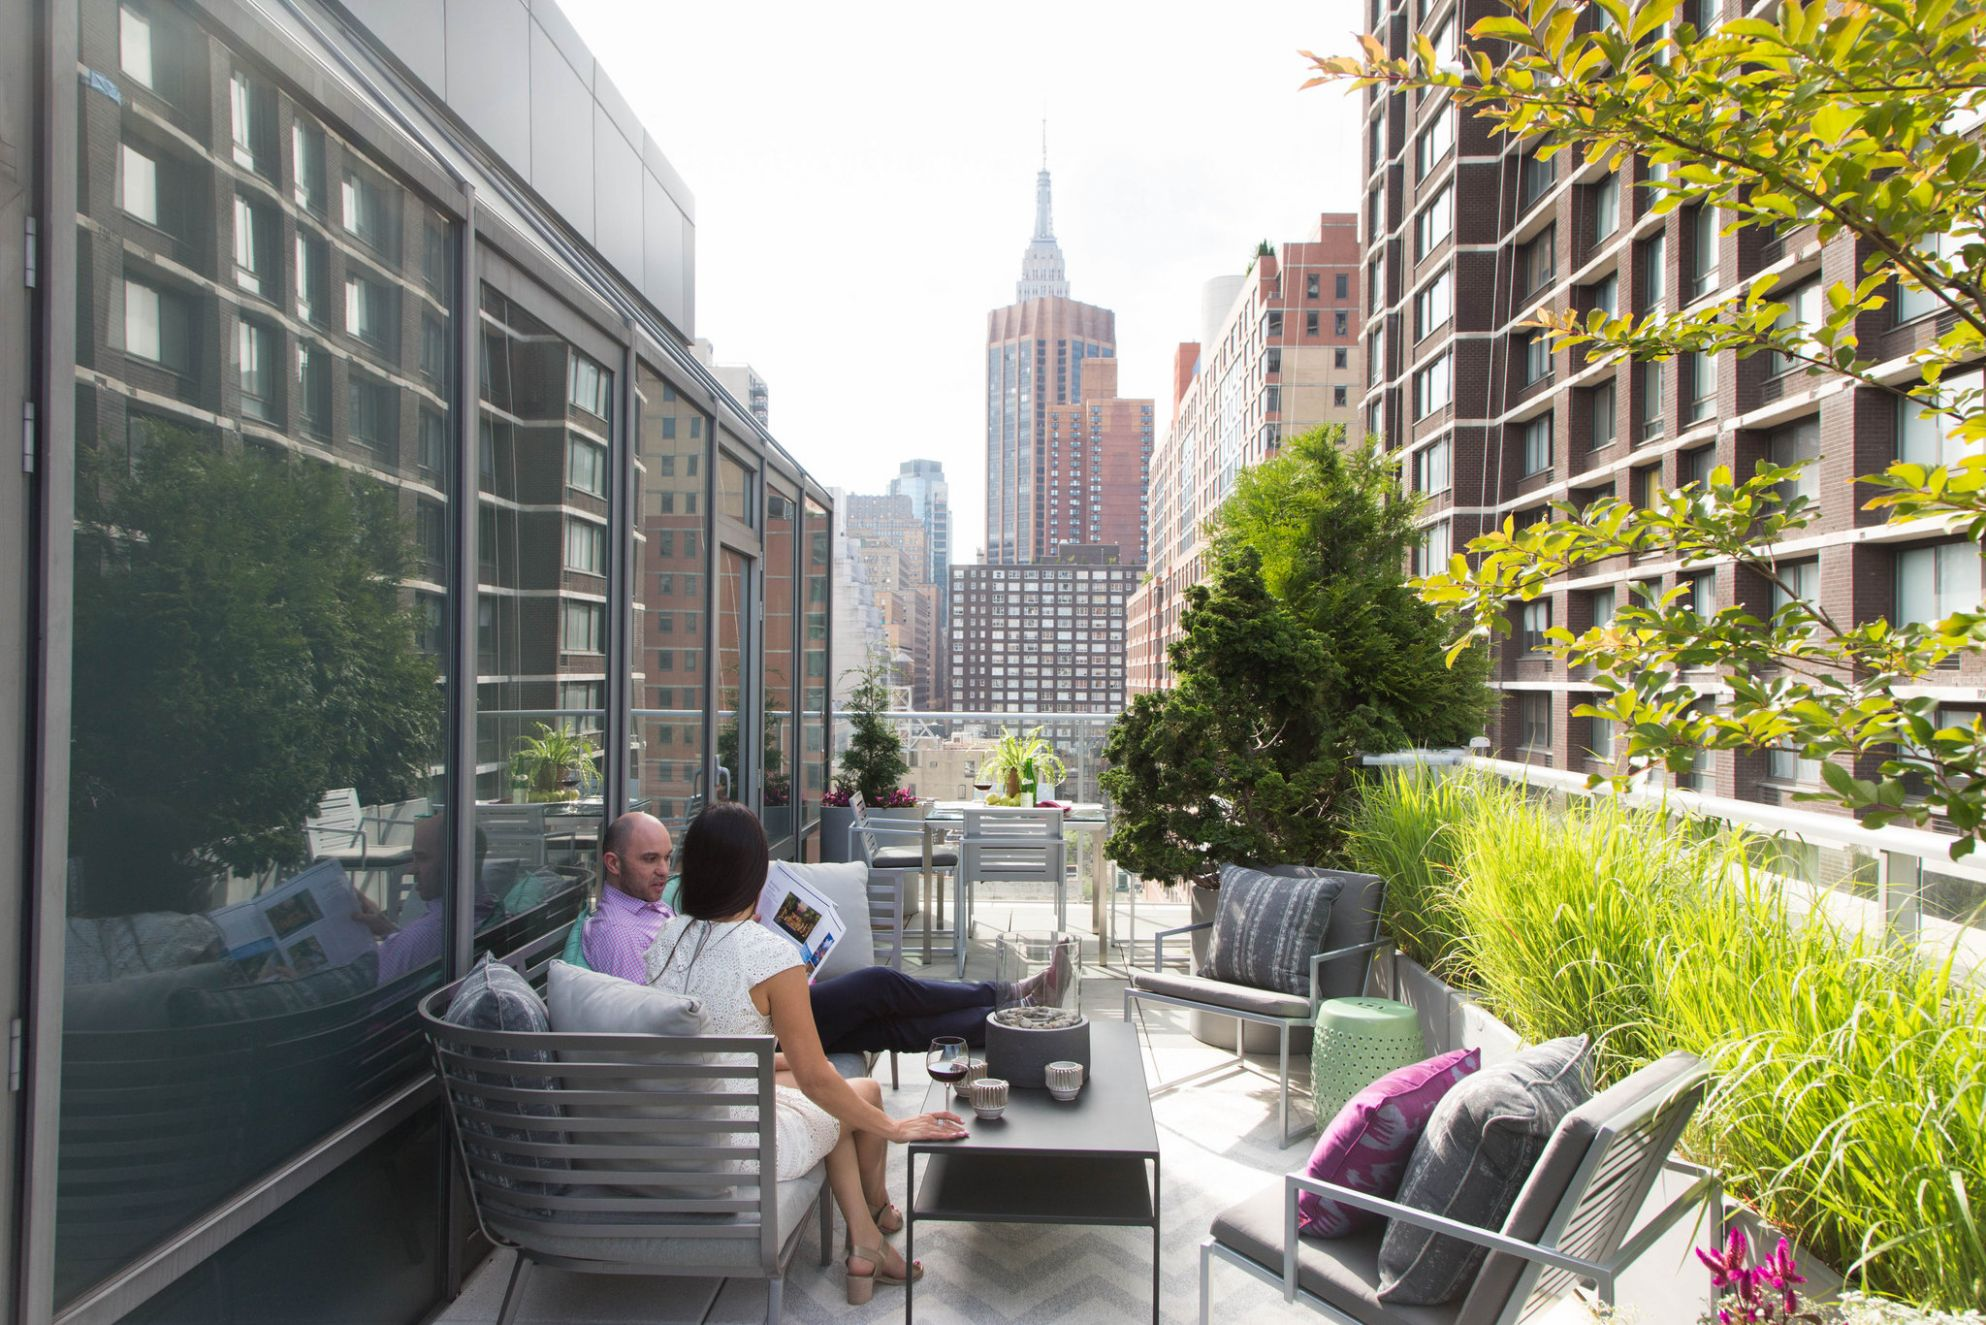 How to Furnish Your Terrace or Backyard - The New York Times